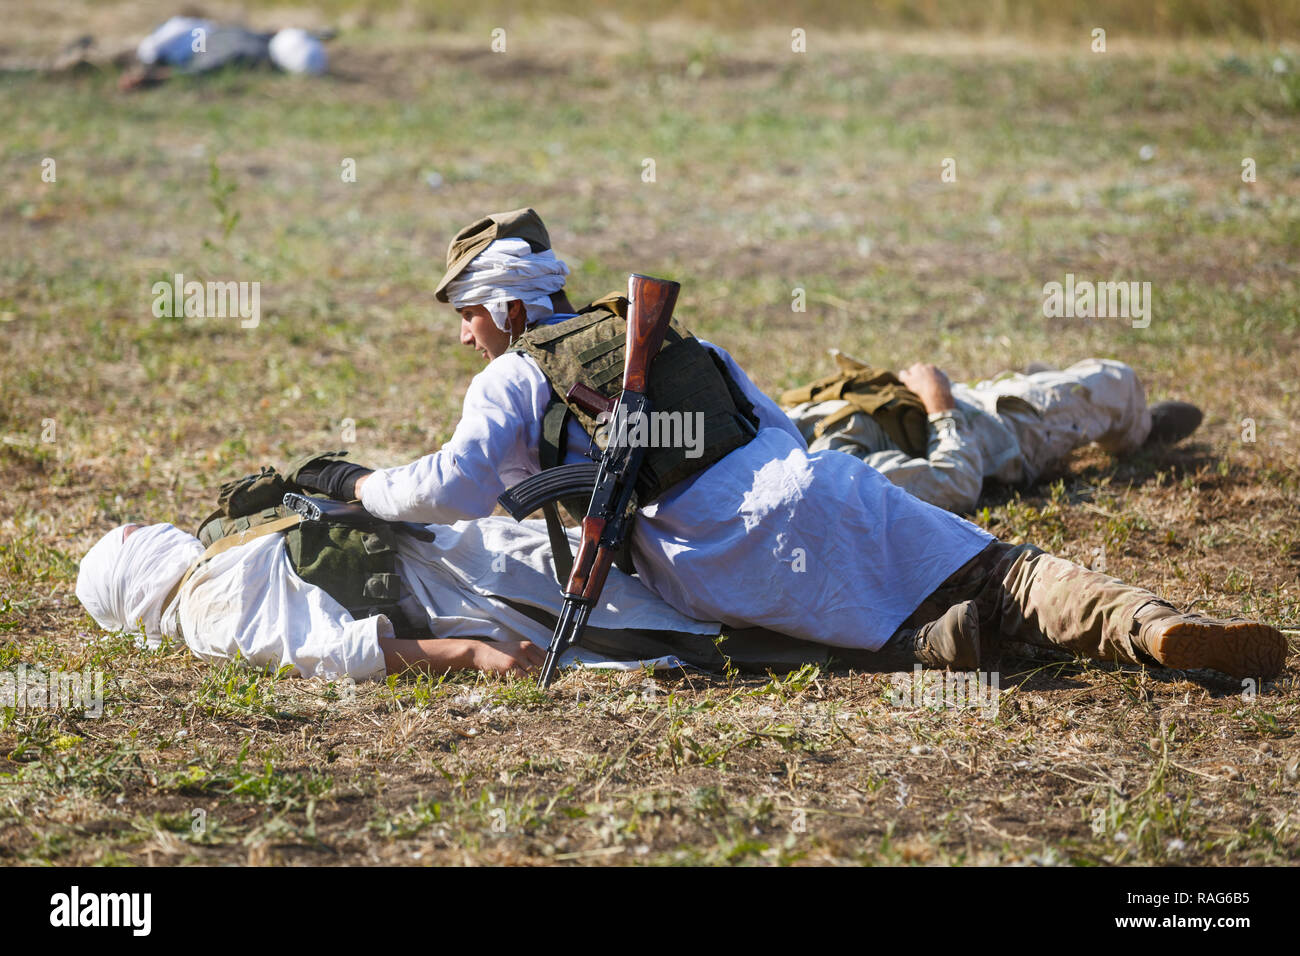 Historical festival Sambek Heights. Mujahid lean over a dead soldier - Stock Image